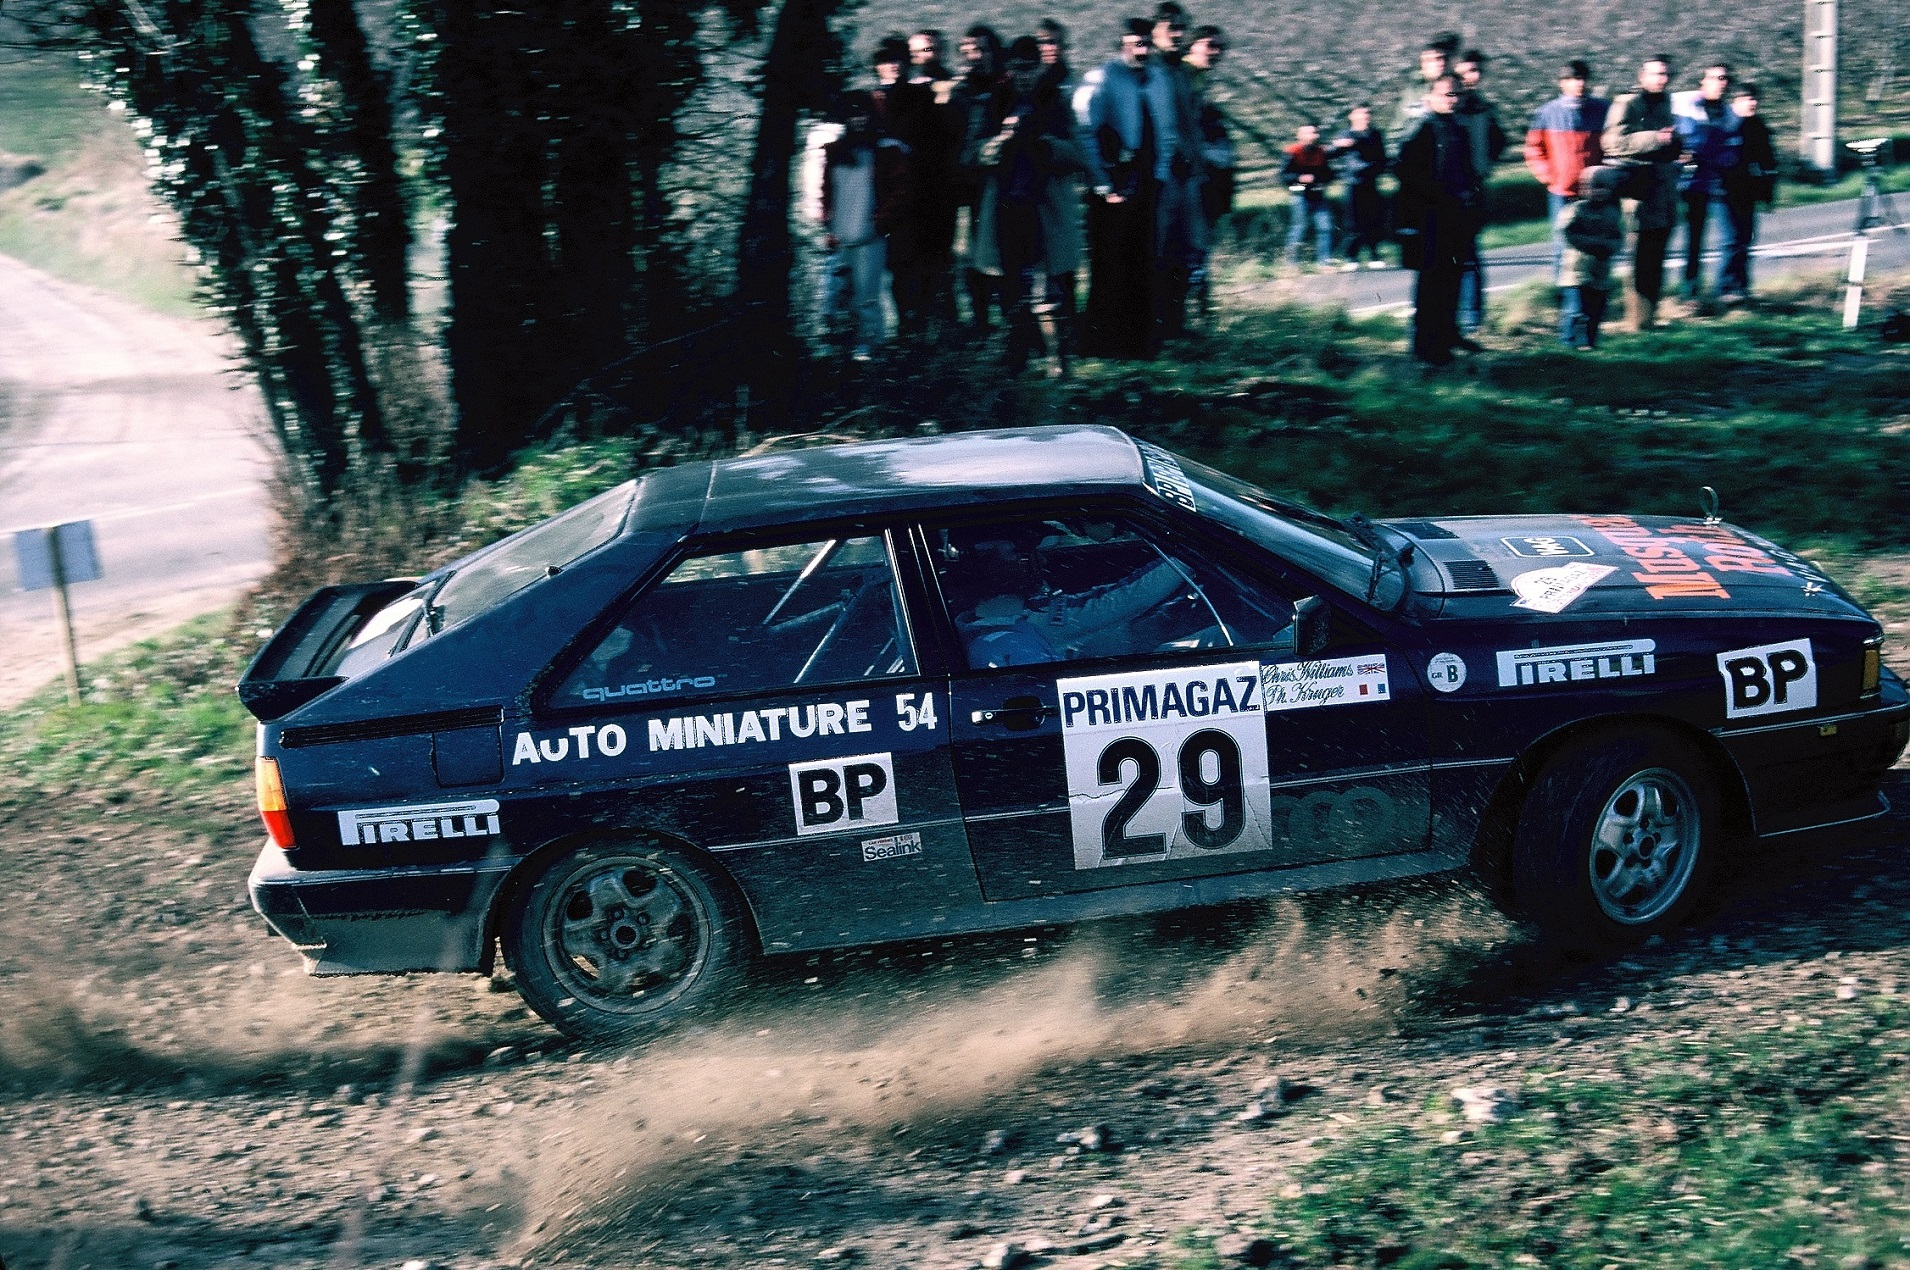 Philippe Kruger - Audi Quattro groupe B - 1982 - Rallye de Touraine - photo Thierry Le Bras